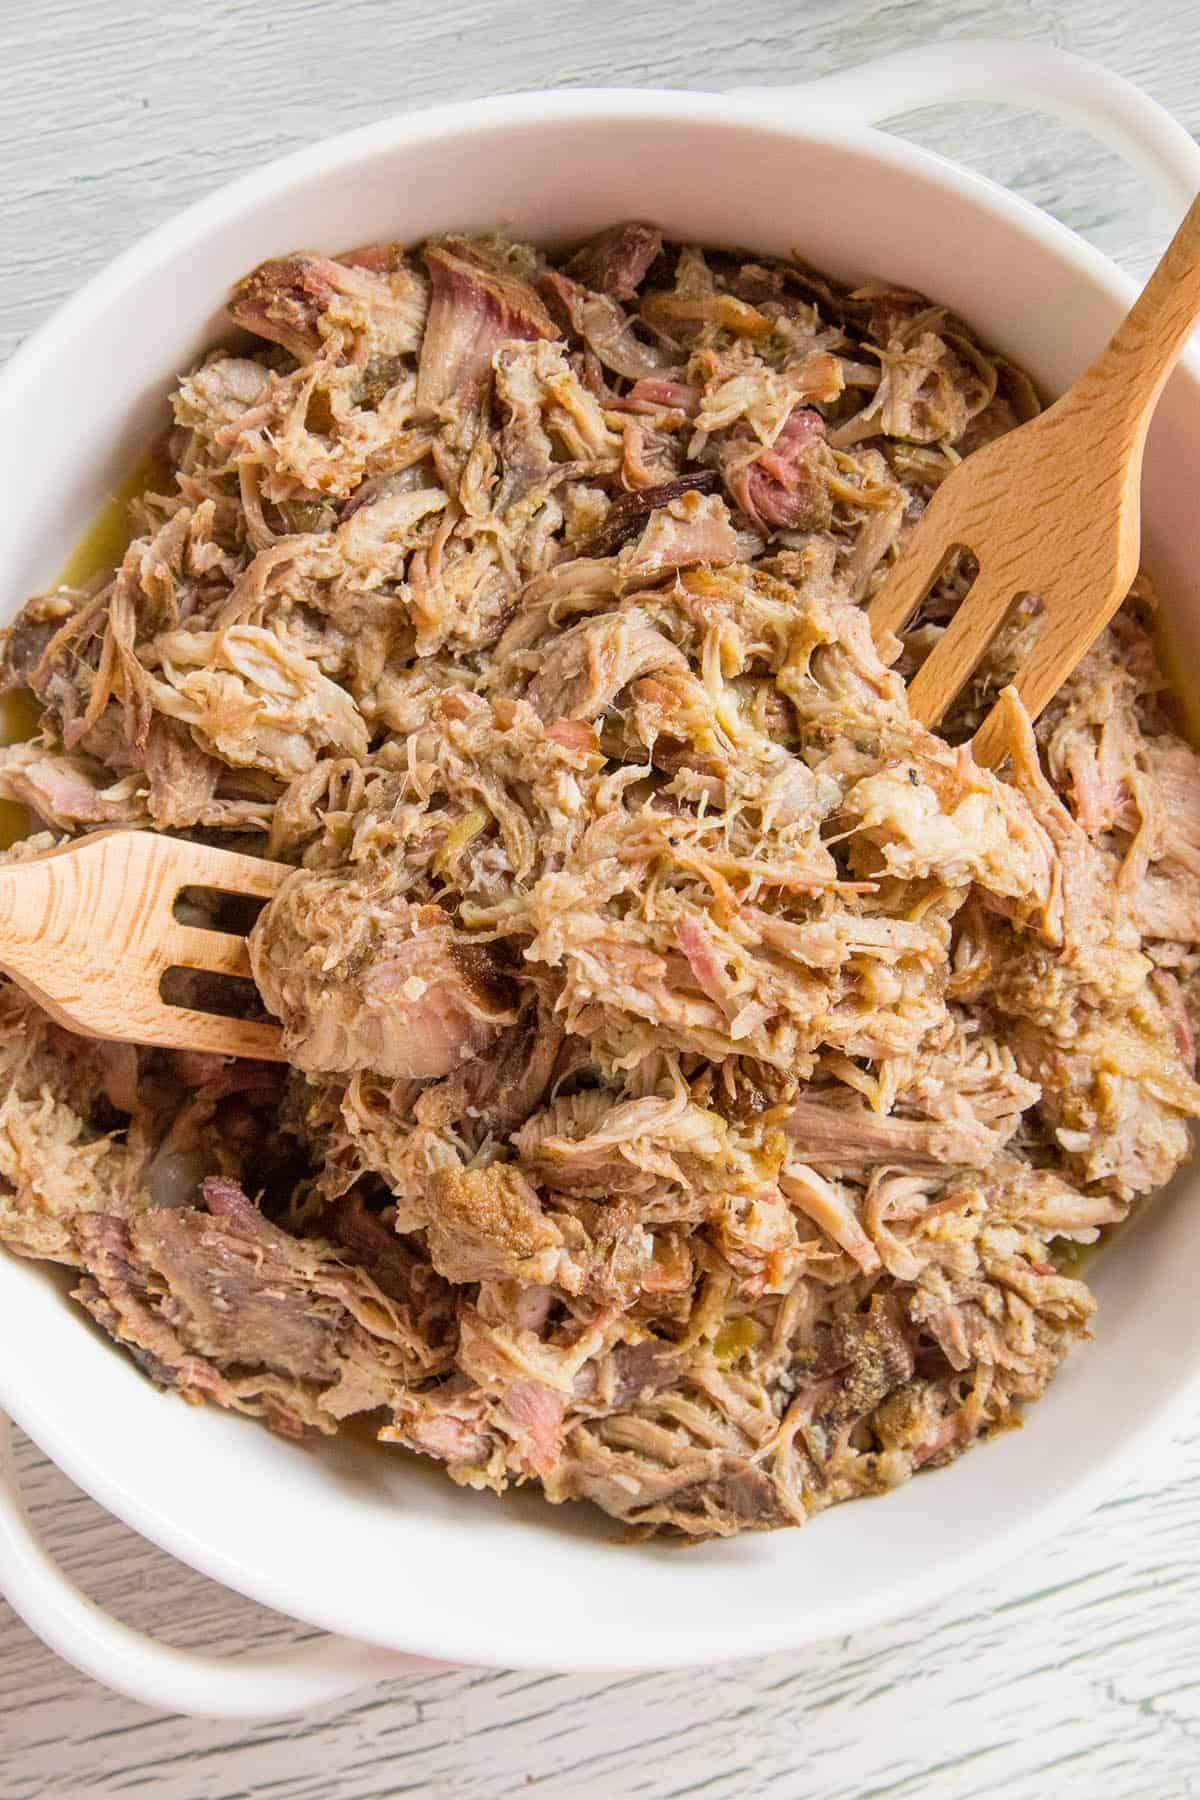 Juicy, smoked pulled pork in a bowl, ready for you to eat